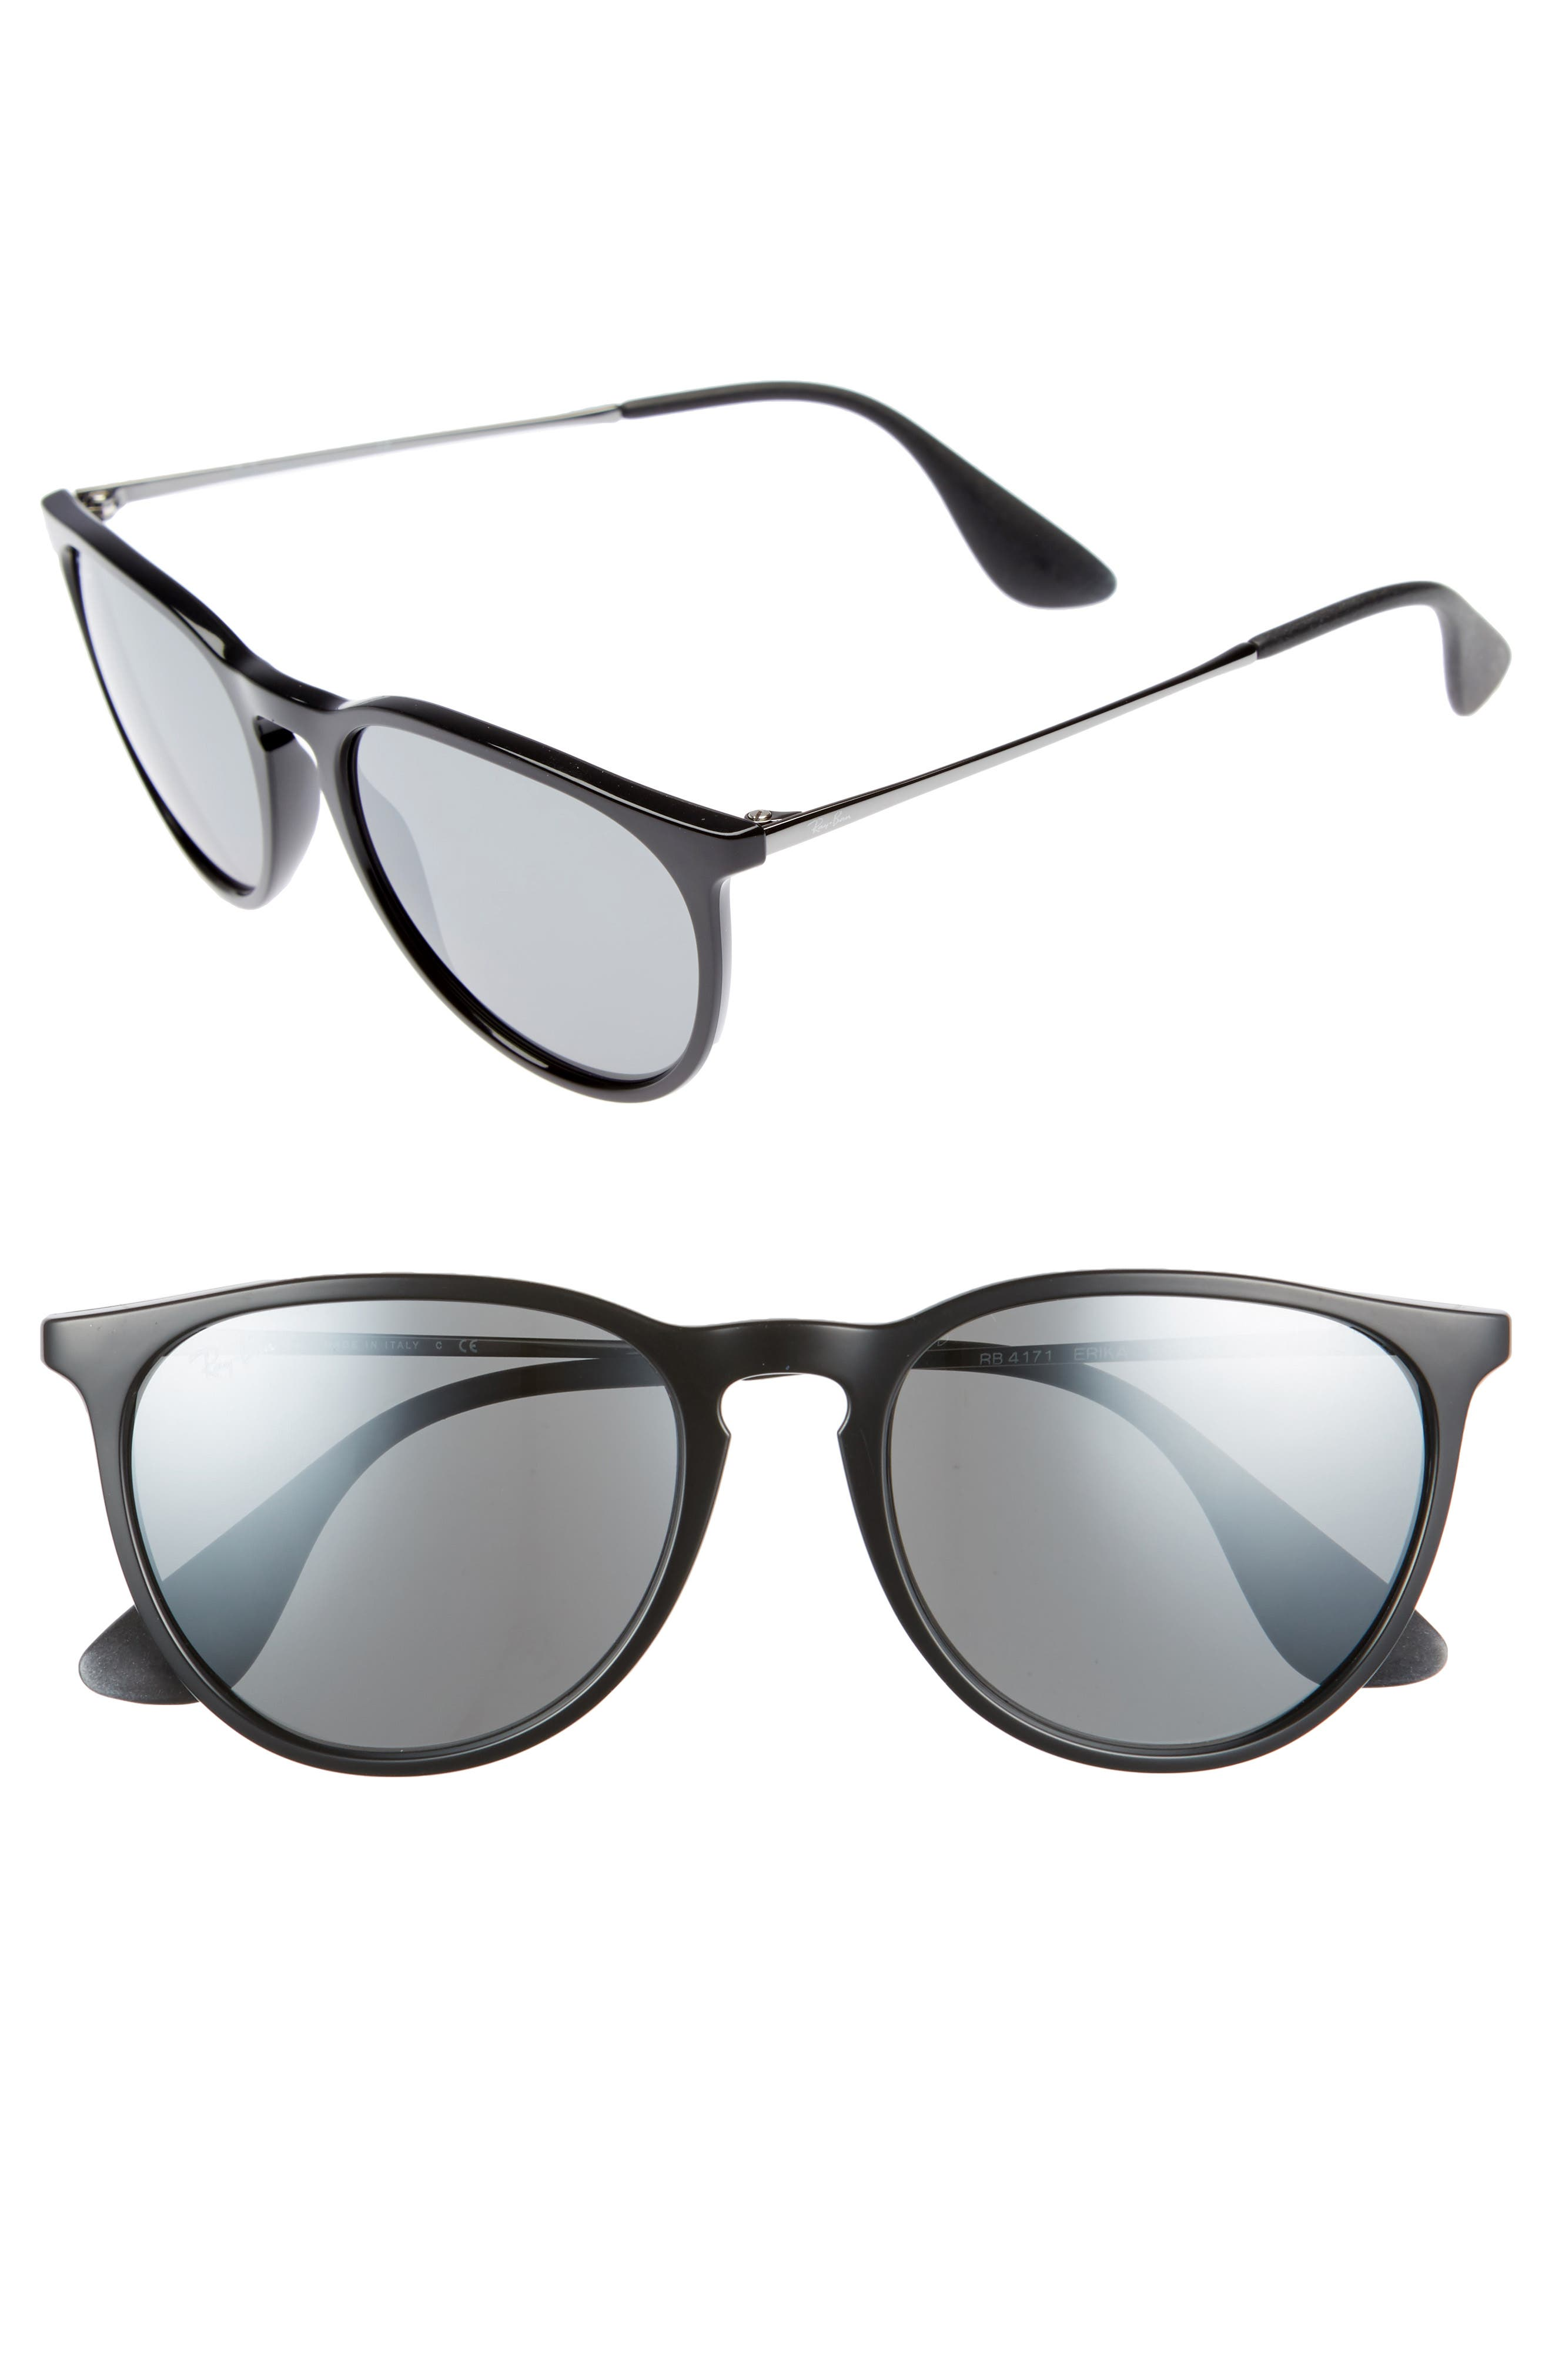 Erika 54mm Mirrored Sunglasses,                         Main,                         color,